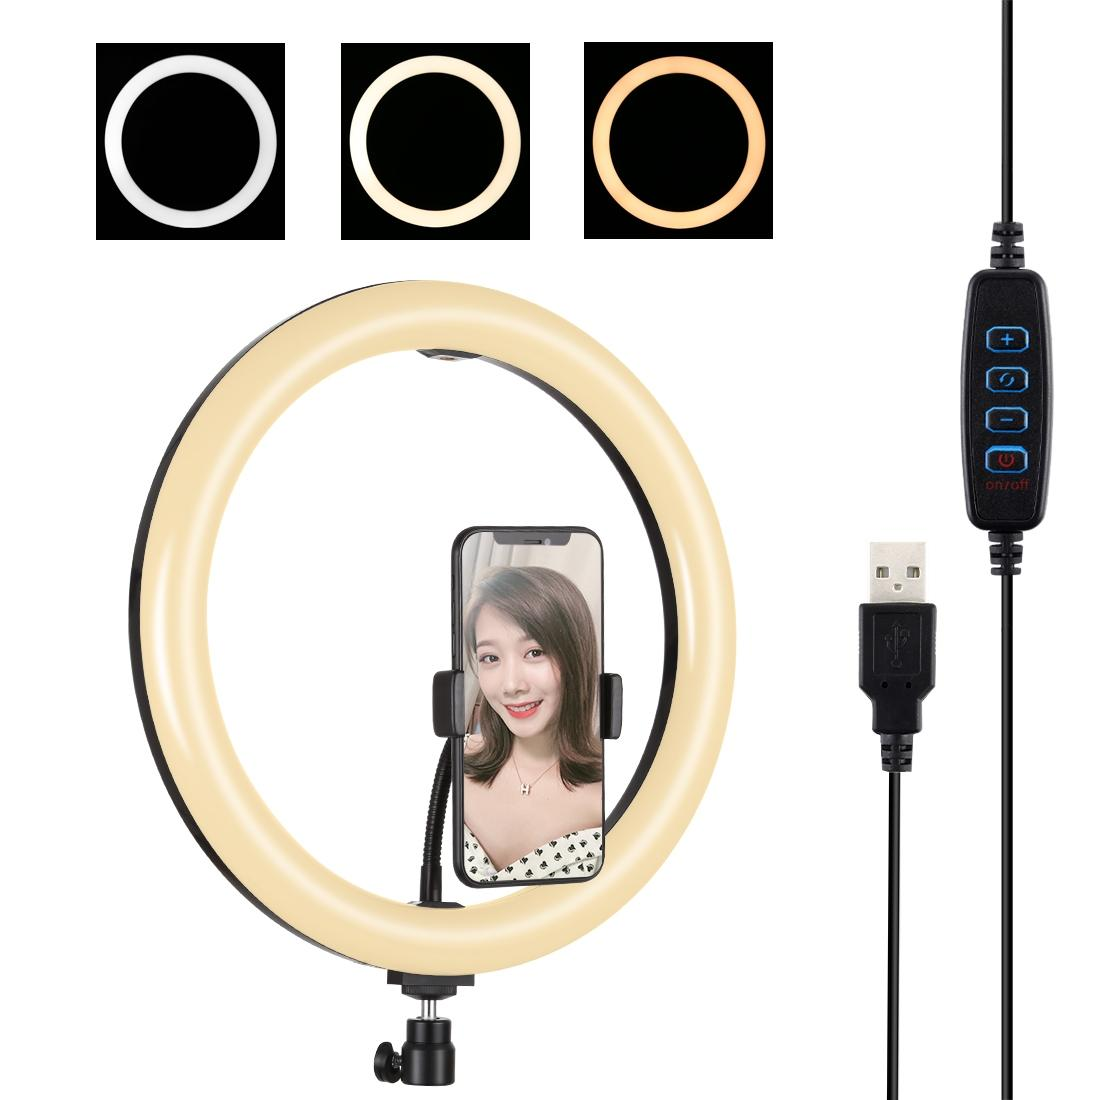 PULUZ Modes Dimmable Dual Color Temperature LED Curved Diffuse Light Ring Vlogging Selfie Photography Video Lights with Phone Clamp